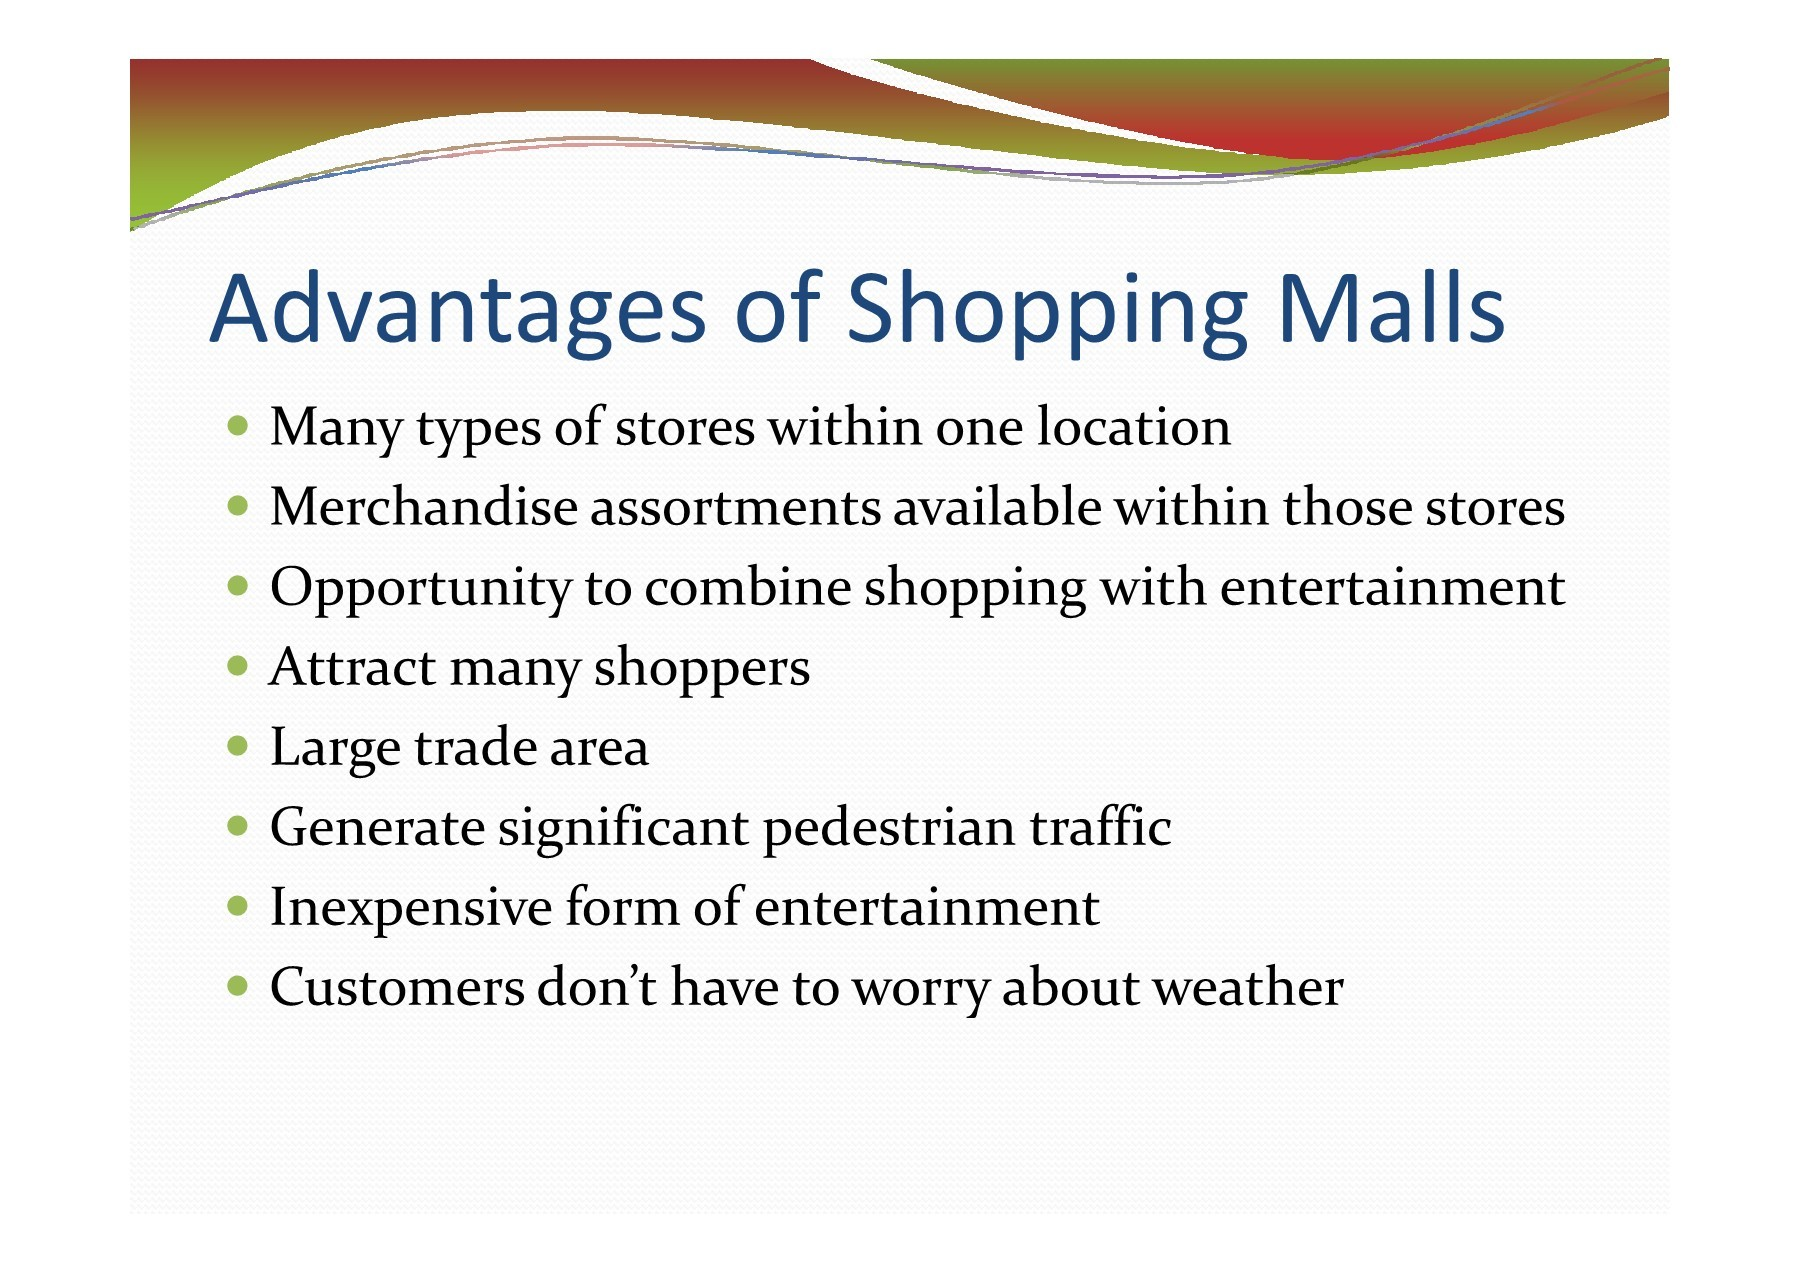 Disadvantages of shopping malls?